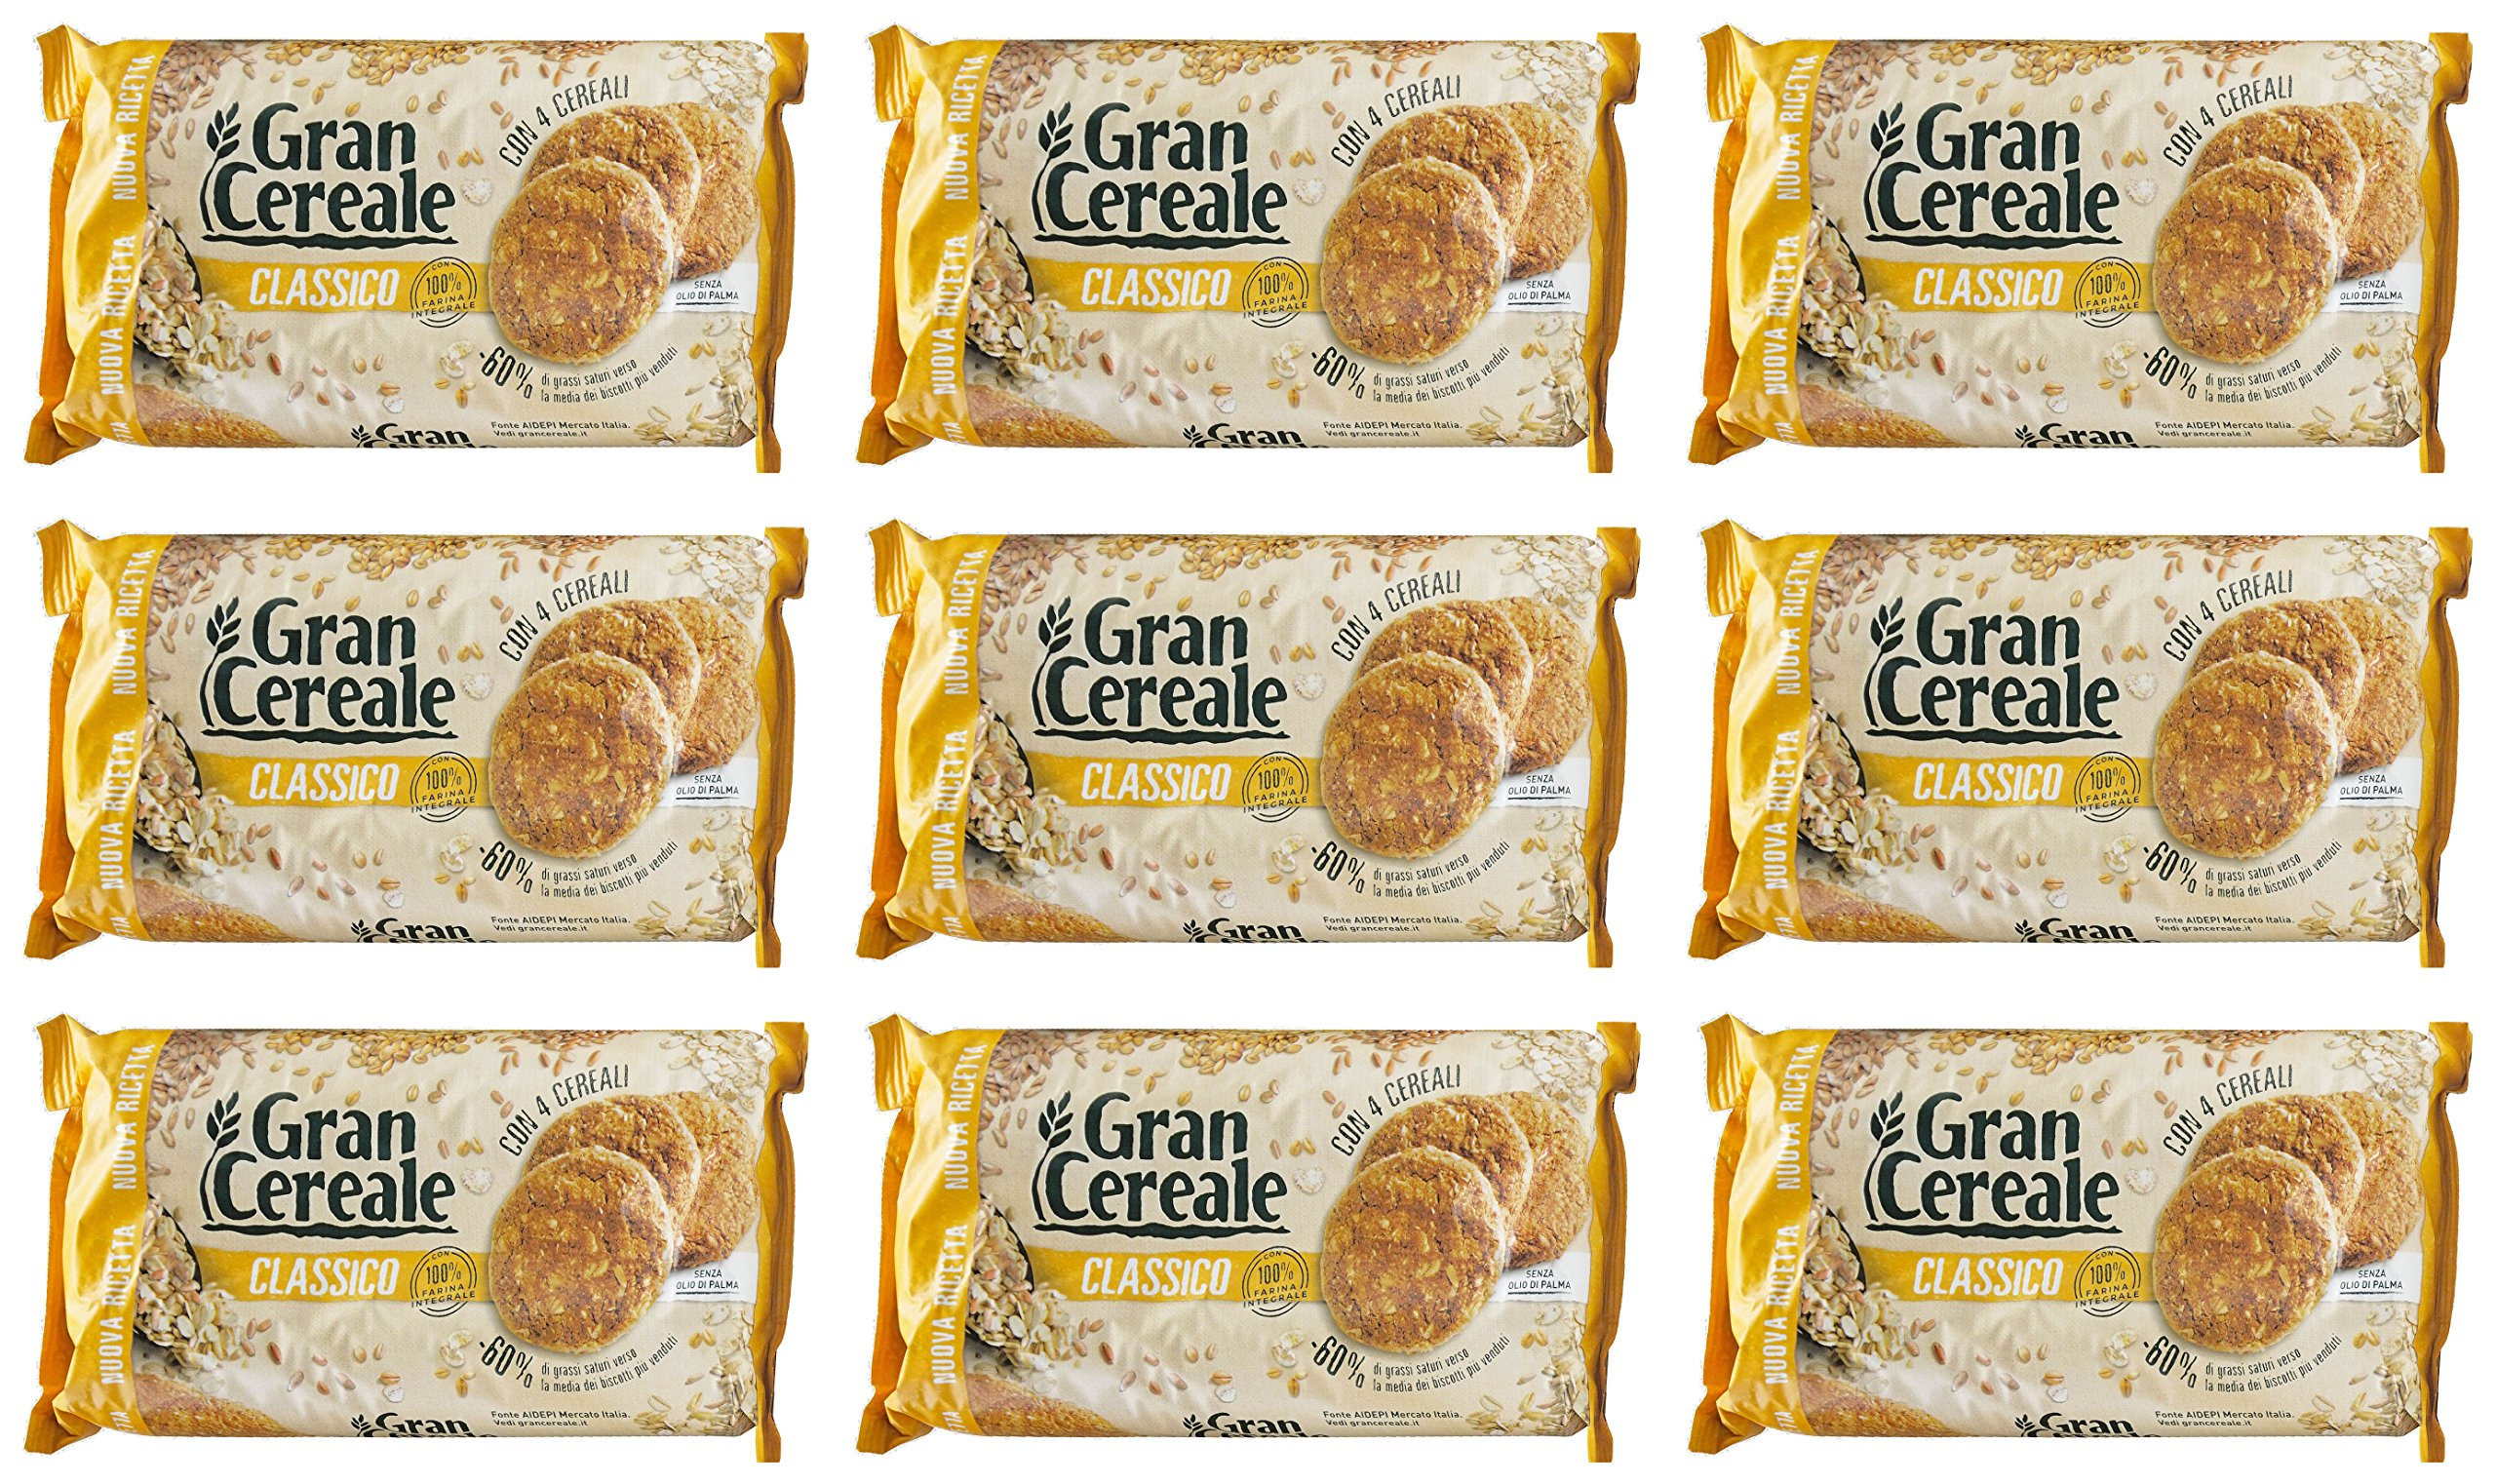 Mulino Bianco: ''Gran Cereale Classico'' Cereals Cookies (Classic Taste), High in Fibers Biscuits 17.63 Ounces (500g) Packages (Pack of 9) [ Italian Import ]